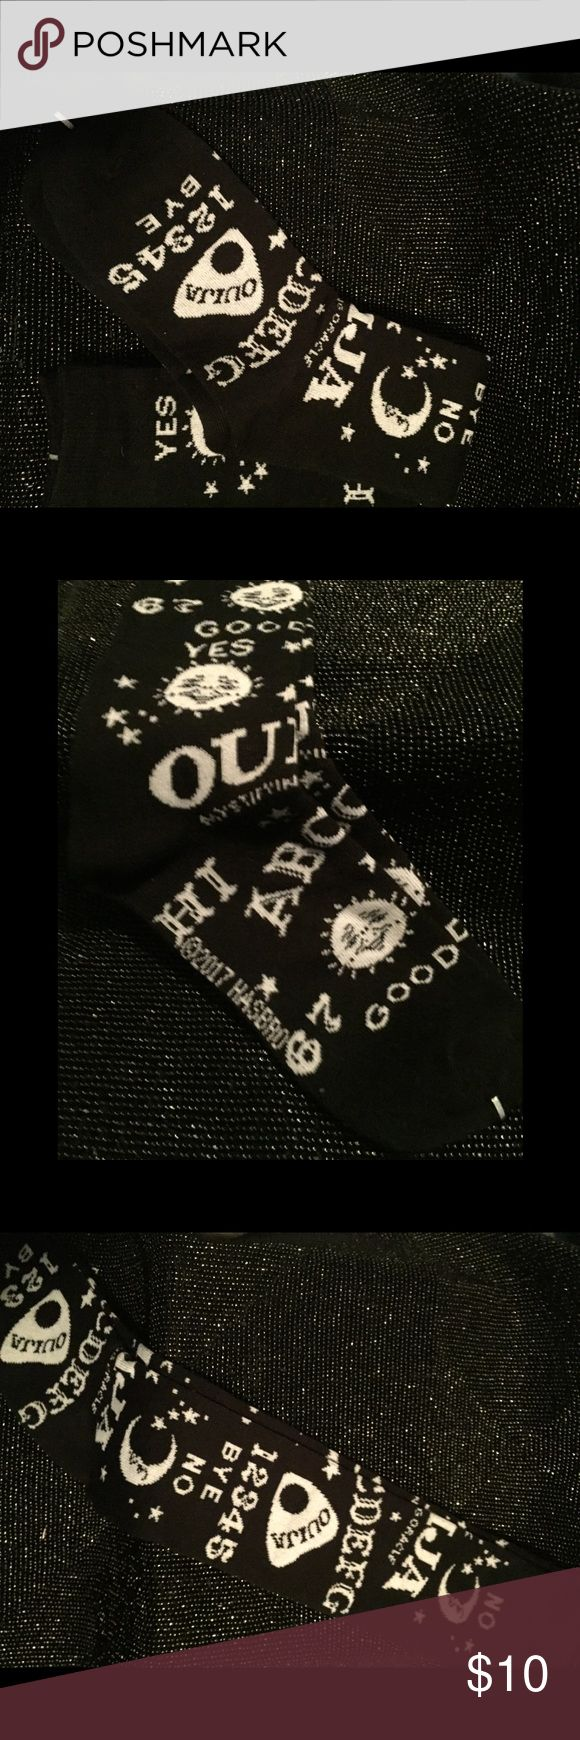 Cult Of Personality, Ouija X-Long Socks, NWT Cult Of Personality, Ouija X-Long Socks, NWT  These Socks Are Black & White  And Feature An All Over Ouija Print.  They Are Extra Long & Fit Over The Calf.  They Are Available In Men's & Women's Size Women's Fits Sizes 5 - 10 Men's Fits Sizes 7 - 12  Fabrication: 95% Cotton, 5% Spandex New With Tags. They Arrive Sealed  In The Manufacturer's Cellophane Packaging. Emporiama Accessories Hosiery & Socks